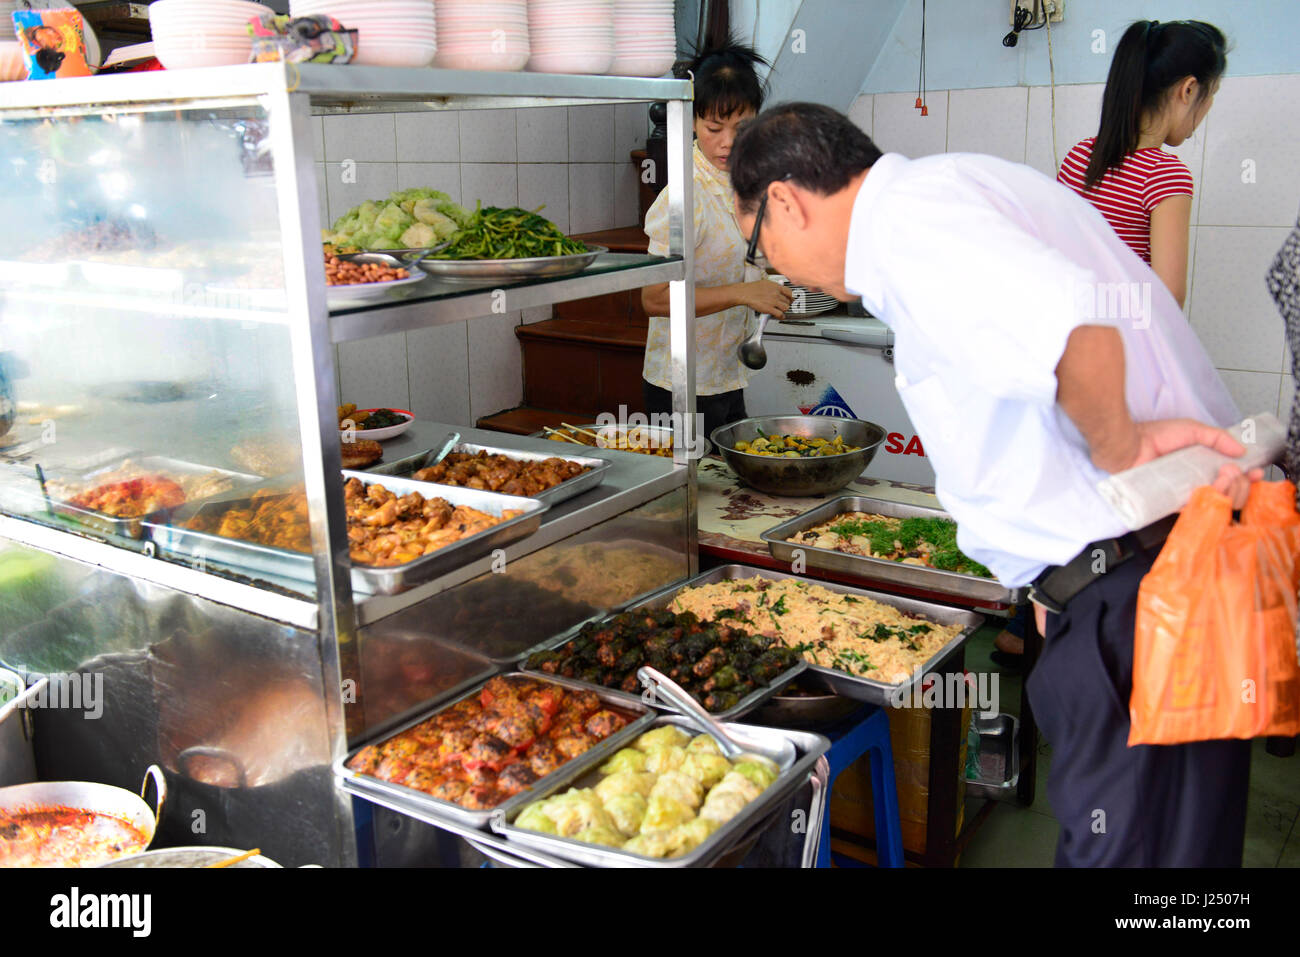 A simple Vietnamese restaurant in Hanoi. The food is on display. Many customers buy and take it as a takeaway lunch. Stock Photo